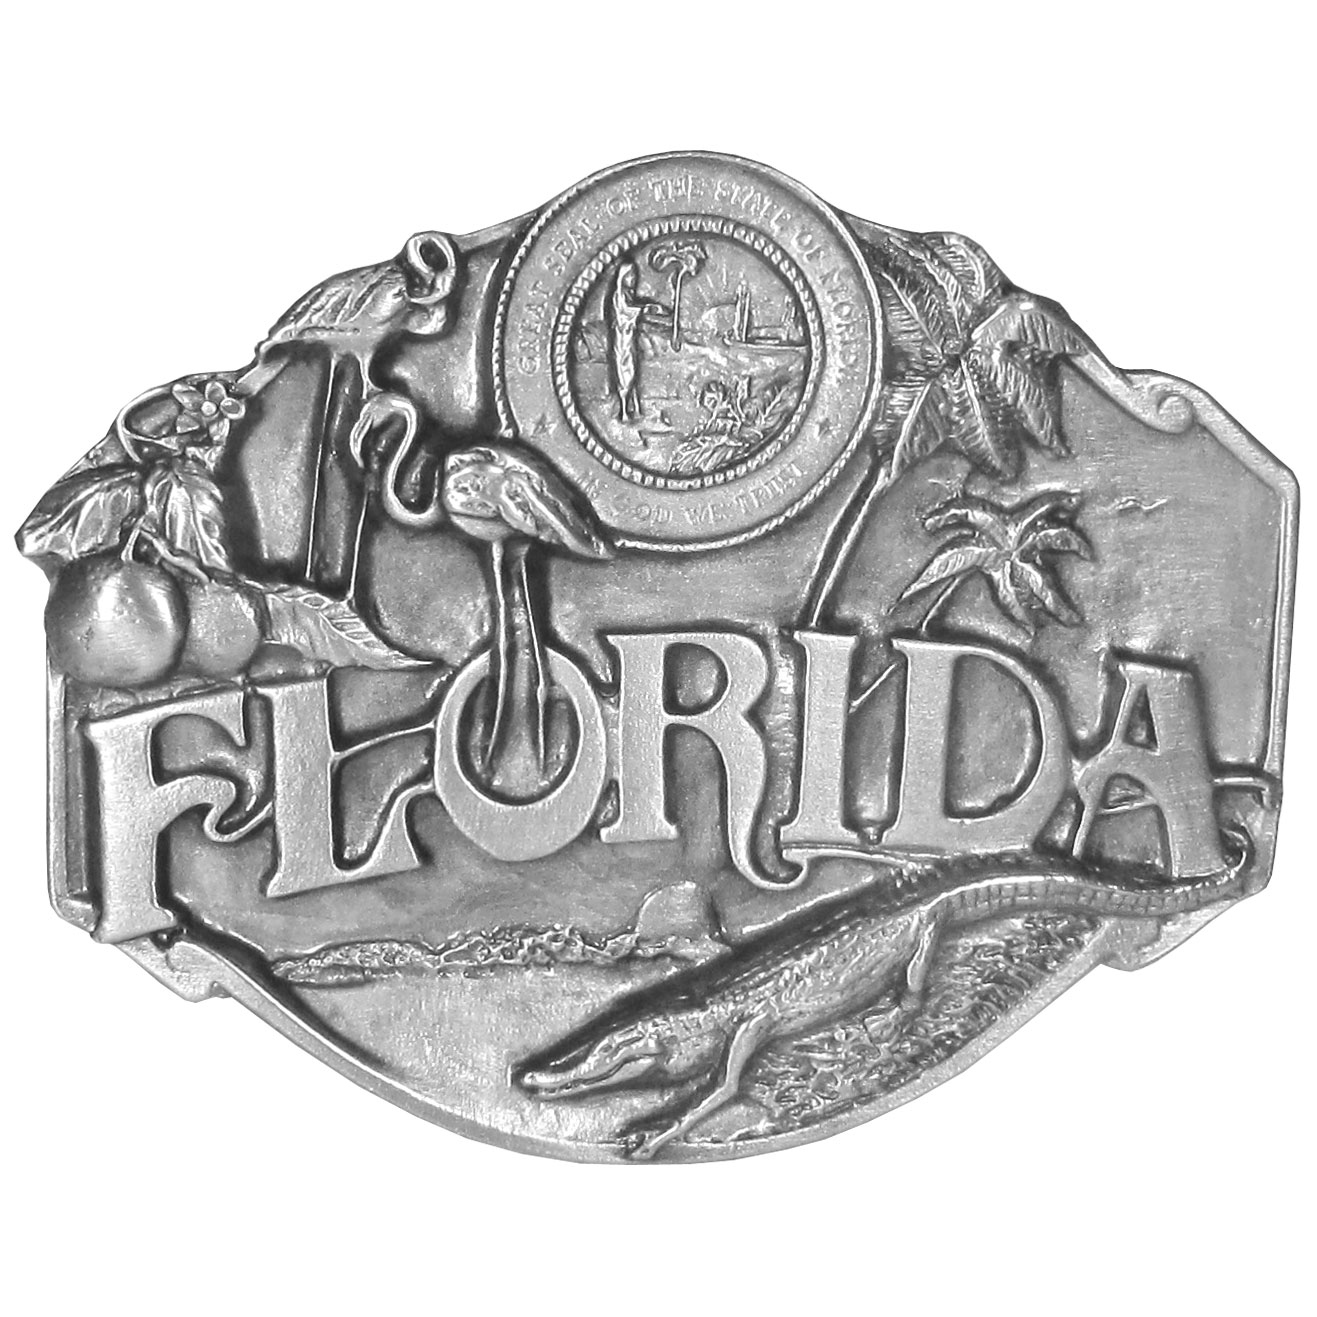 Florida Antiqued Belt Buckle - Finely sculpted and intricately designed belt buckle. Our unique designs often become collector's items.